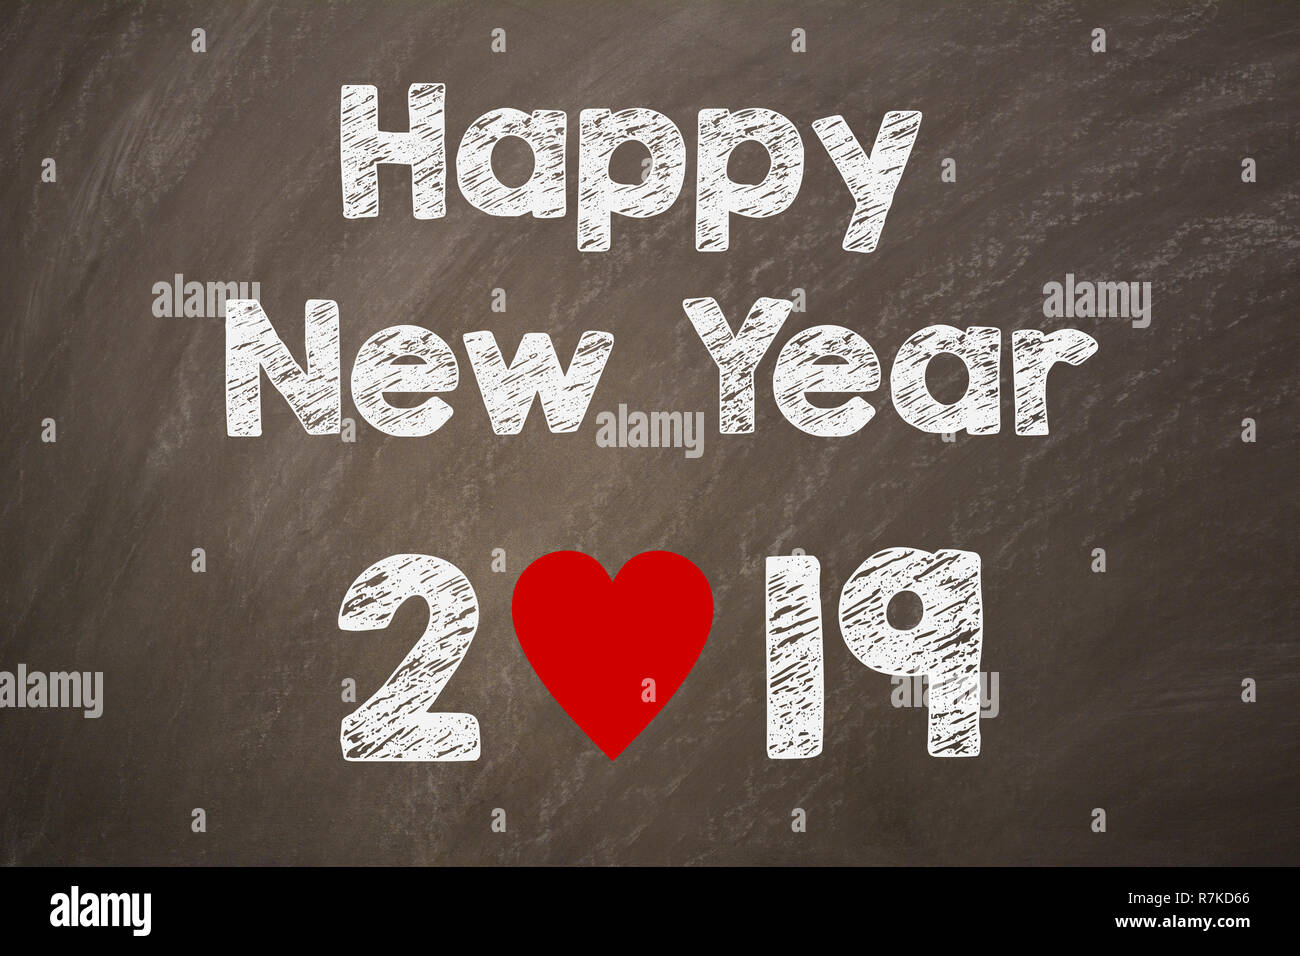 Page 3 Happy New Year 2019 High Resolution Stock Photography And Images Alamy